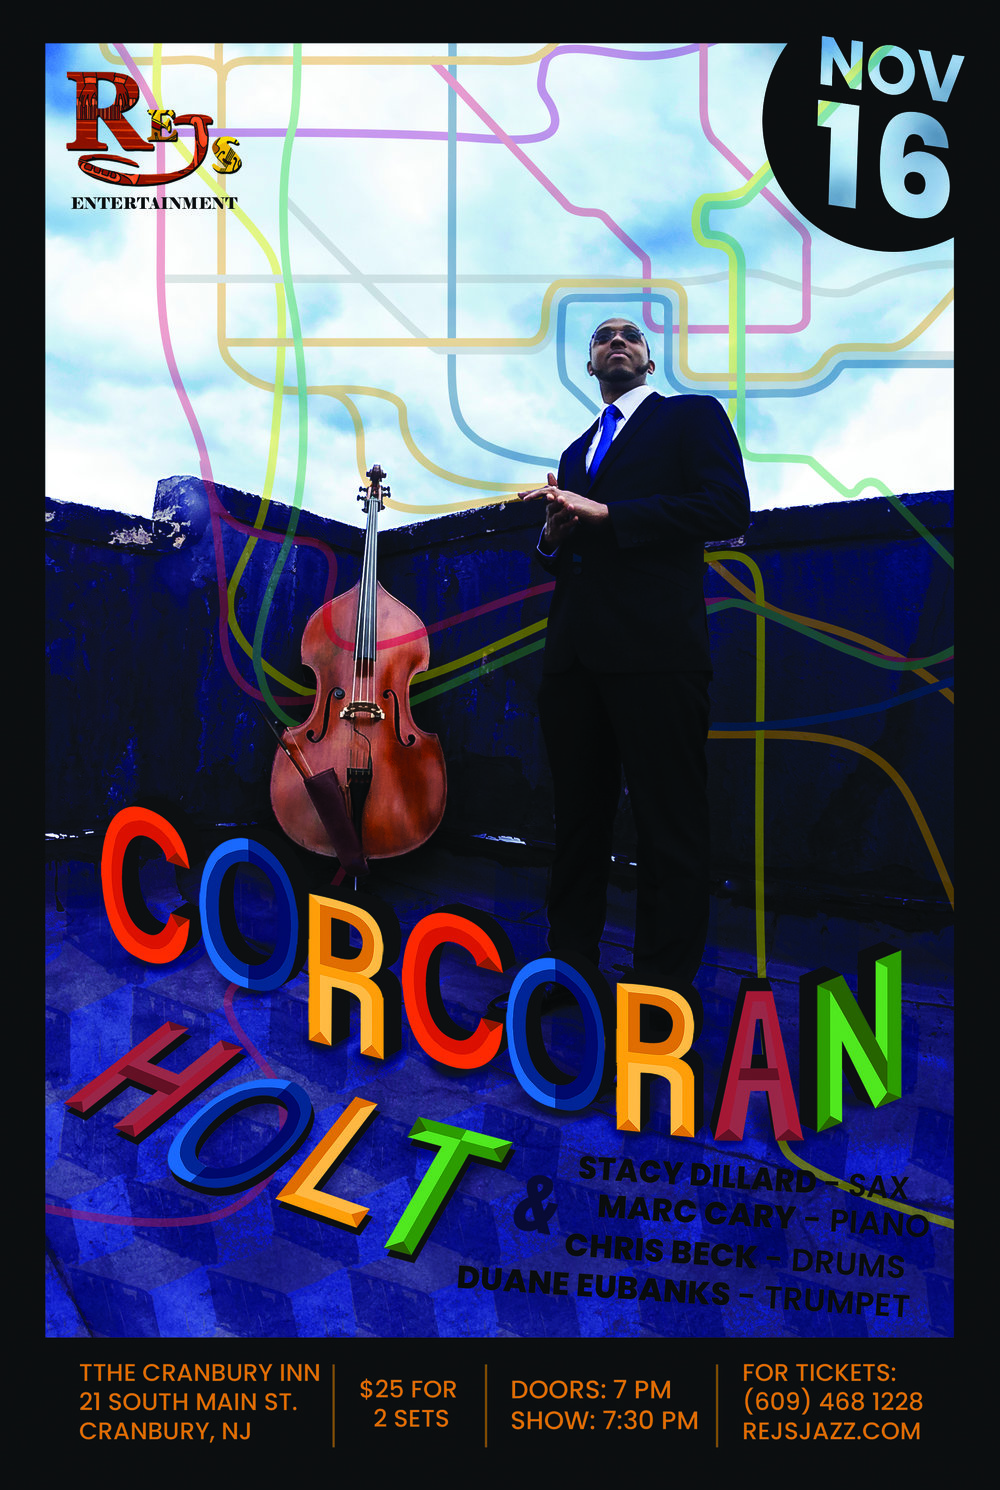 "Corcoran Holt - November 16, 2018As a keeper of the rhythm, Corcoran began his study of upright bass at the age of 10 with the renowned DC Youth Orchestra (DCYOP). Soon he learned that his great- grandfather, with whom he shares a birthday, was a bass player who grew up in High Point, NC and lived next door to a very young John Coltrane. Legend has it that he gave Trane music lessons. Corcoran feels called to the bass and his work is about honoring the ancestors.Currently, Corcoran leads his own group and is the regular bassist in the Kenny Garrett Quintet, which received a Grammy nomination for the 2013 recording ""Pushing the World Away"" recorded on Mac Avenue Records.Corcoran also works with numerous bands throughout the world and he is based in NYC and also serves as a djembe drummer/music therapist at Greater Harlem Nursing and Rehabilitation Center, where he plays for his elders.Training Grounds & Career Blessingshttps://www.corcoranholt.com/bio"